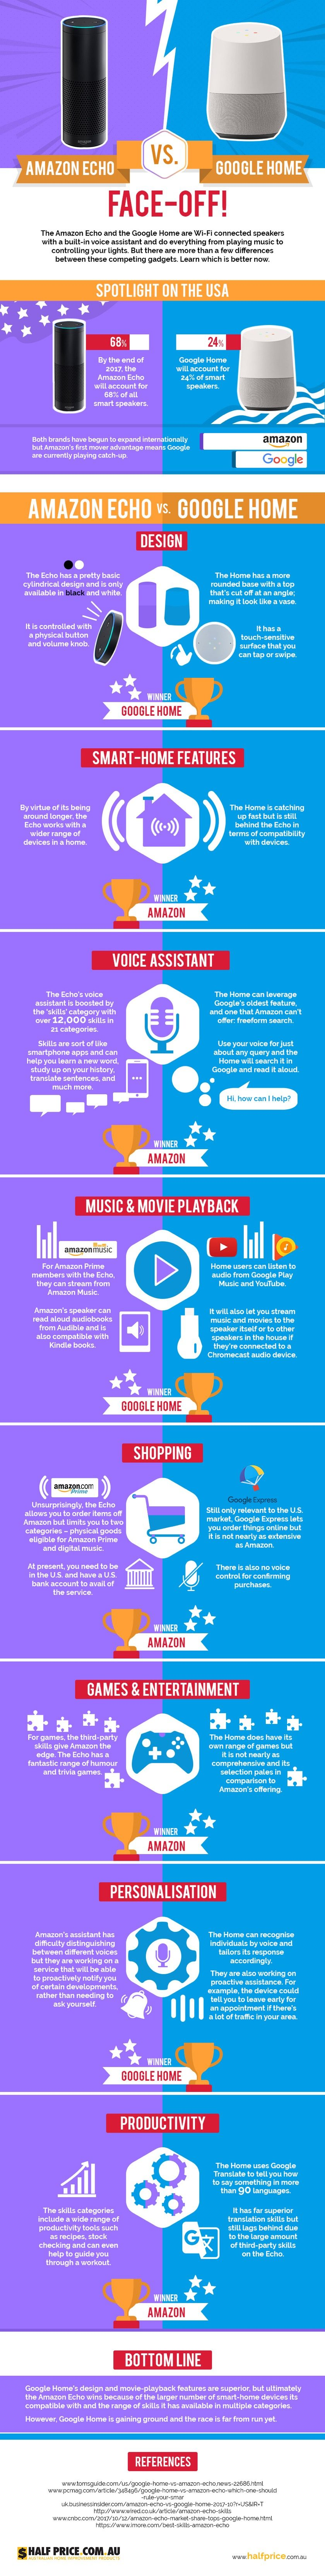 Comparison of smart speakers: Amazon Echo vs. Google Home #infographic